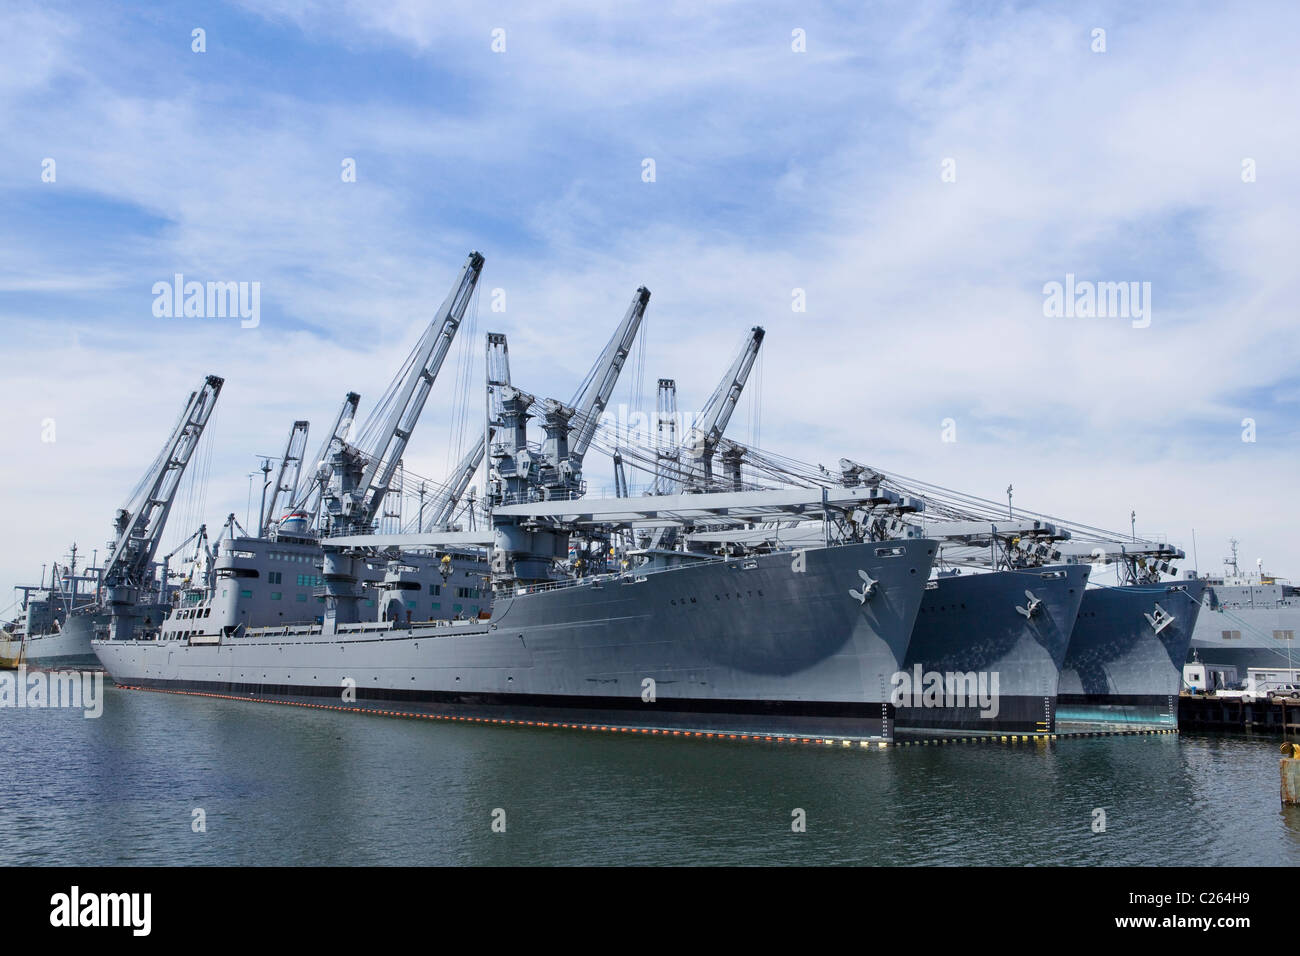 US Navy Keystone State Class Auxiliary Crane Ships docked in port - Alameda, California USA - Stock Image